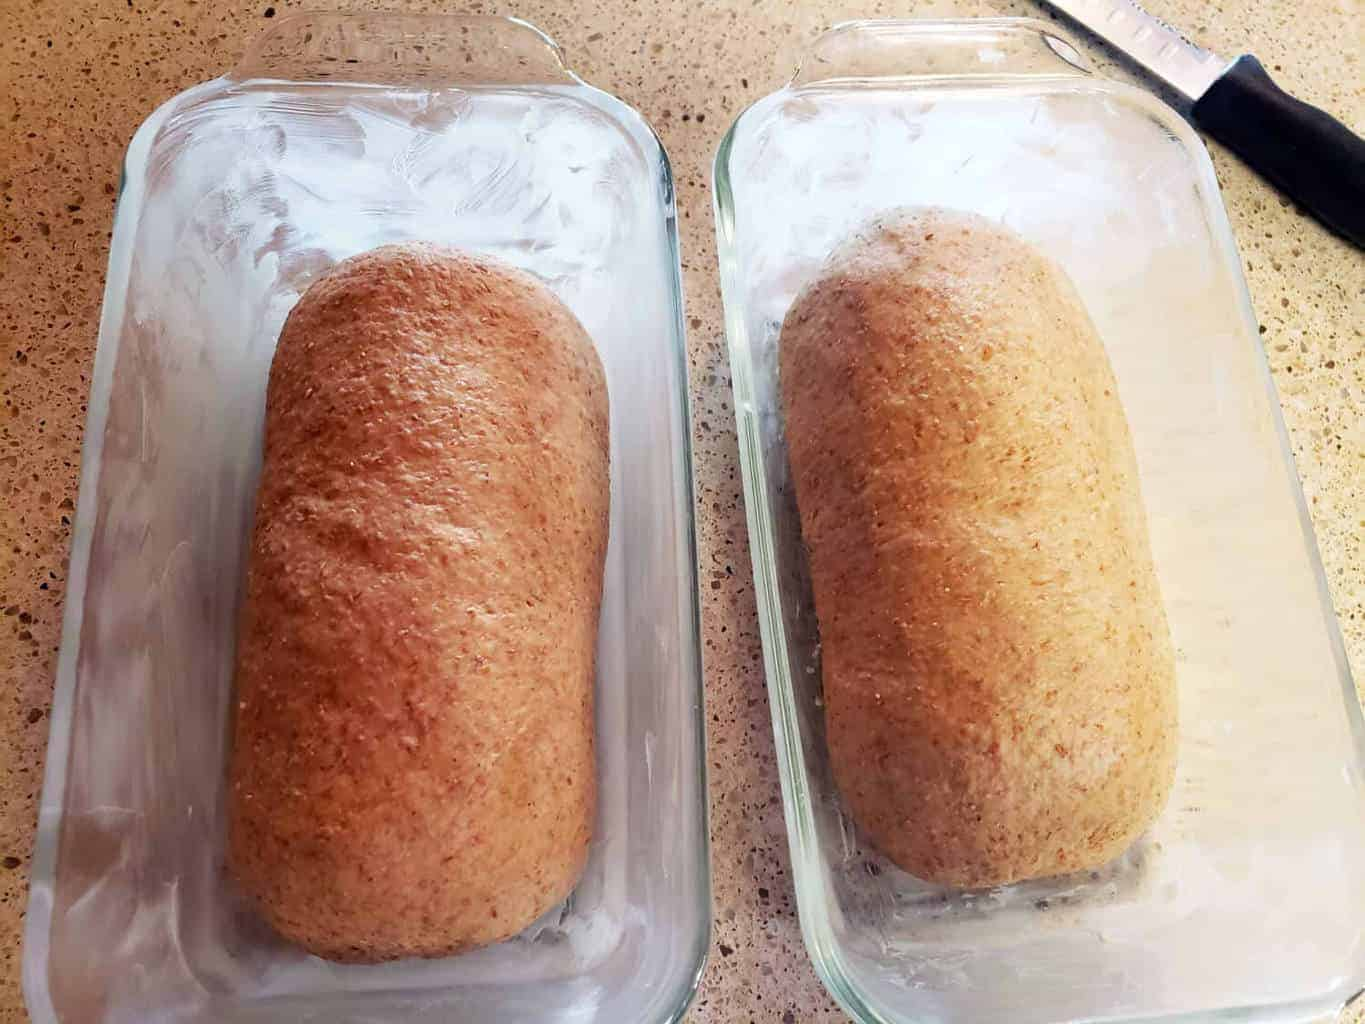 Molasses Whole Wheat Bread dough loaves formed in buttered bread pans